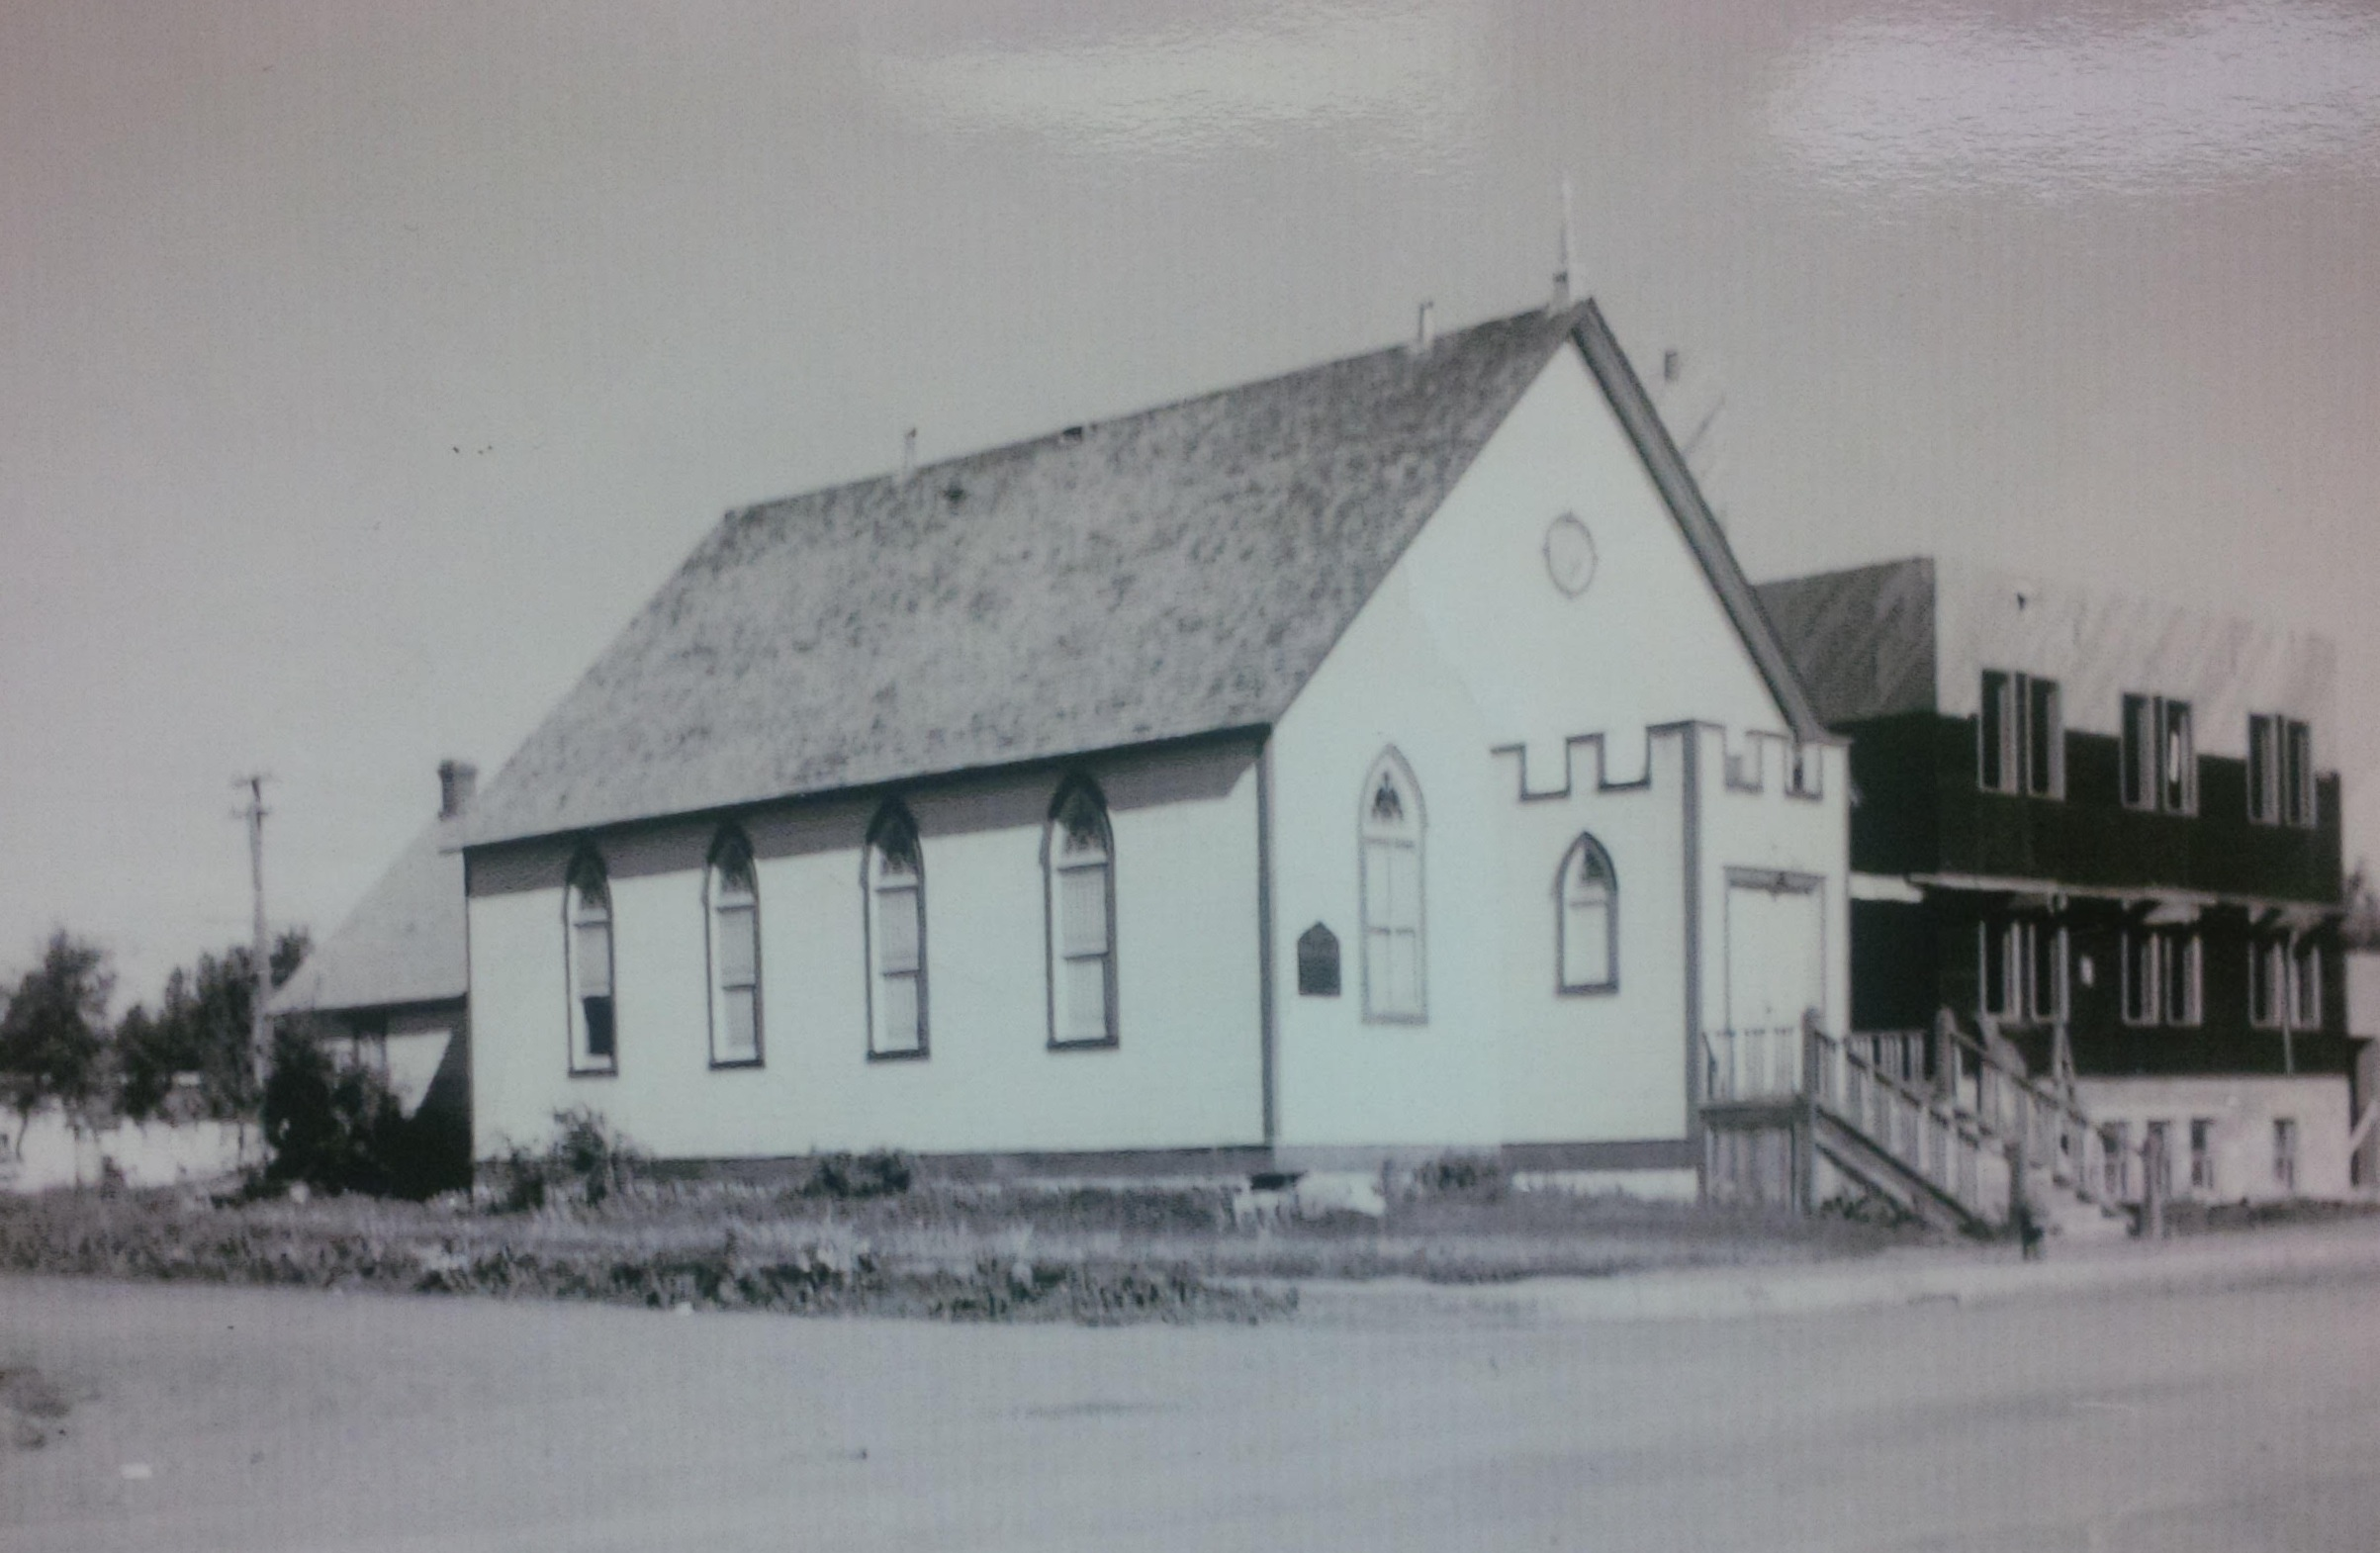 This little old white church sat on what is now the sanctuary. The larger structure under construction behind it is the new 1948 church which became the Upper Hall when the current sanctuary was built.